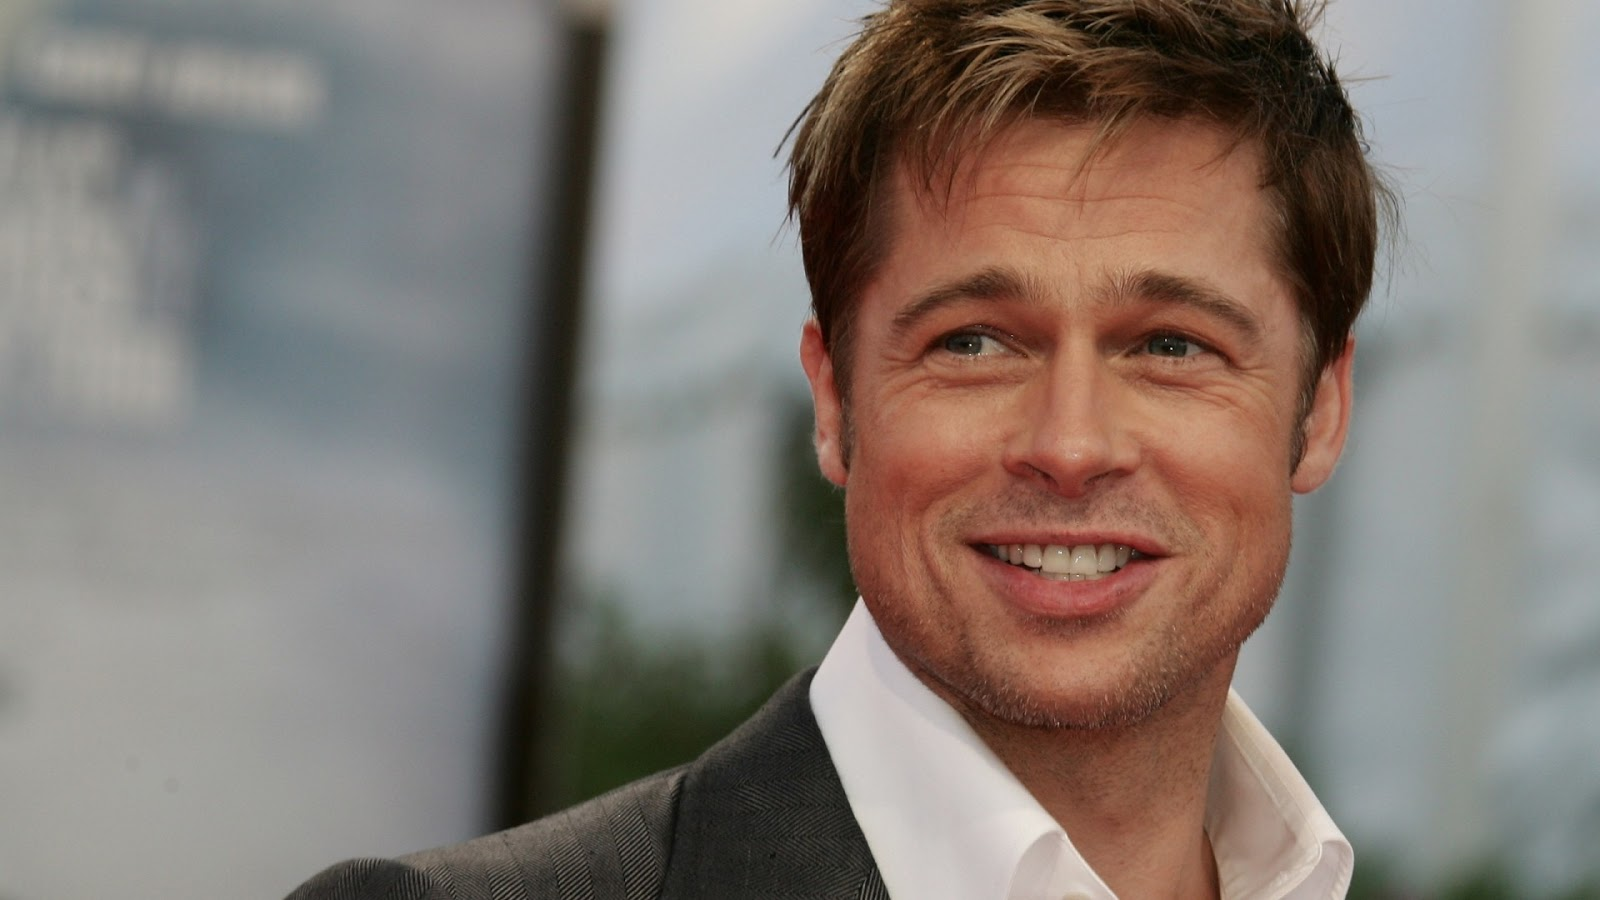 Brad Pitt new smiling HD Wallpapers Wallpaper